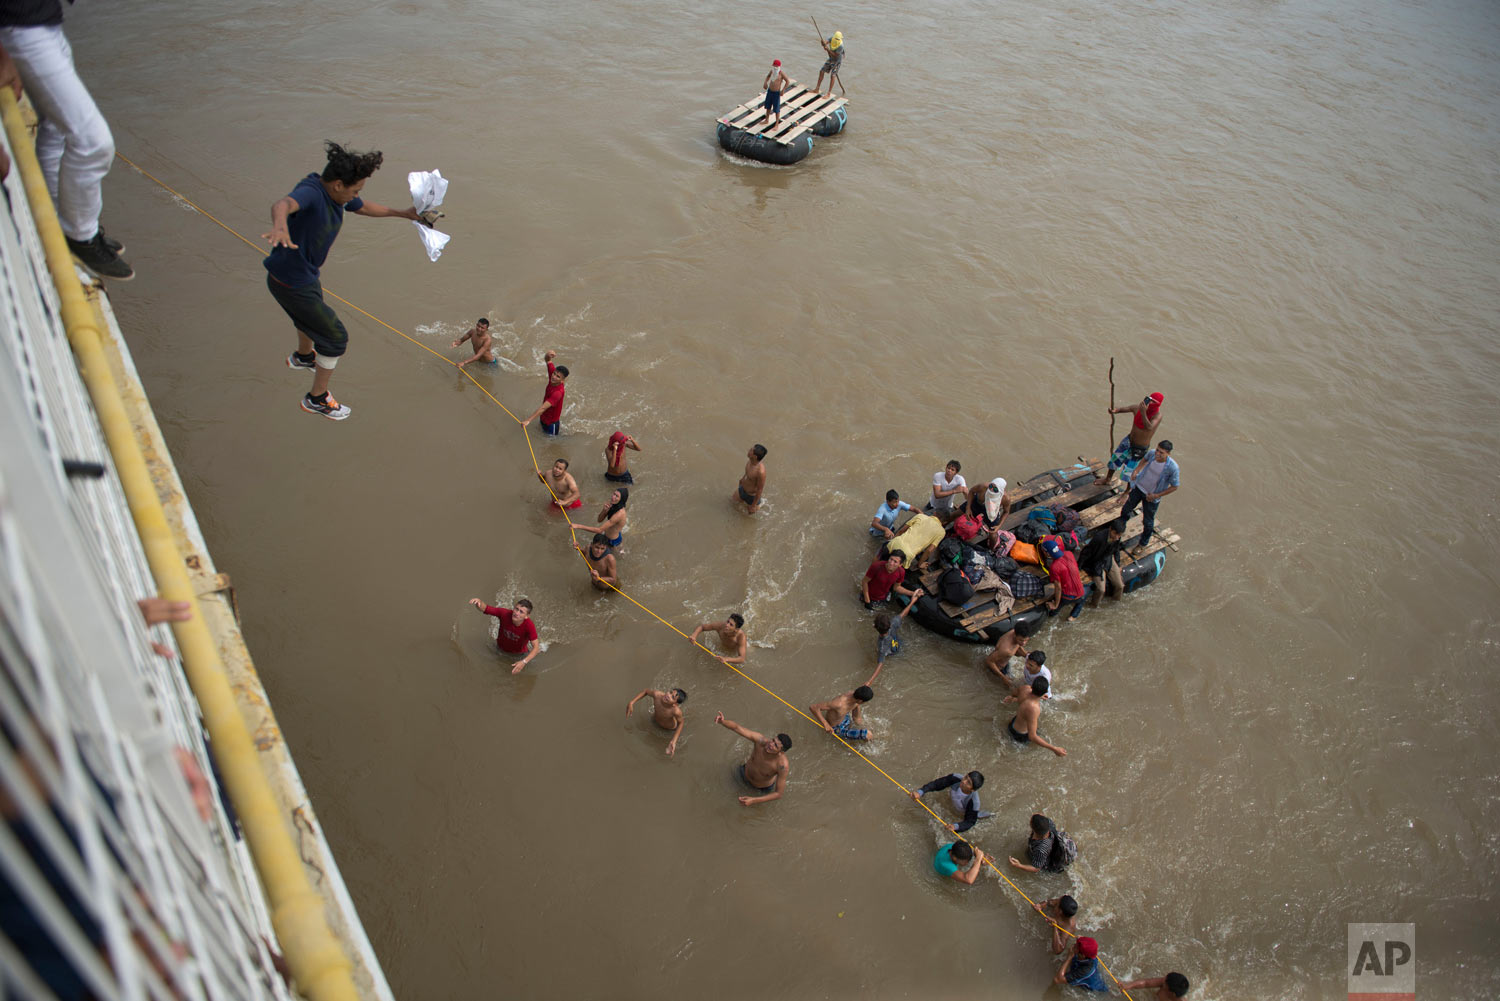 Migrants tired of waiting to cross into Mexico jump from a border bridge into the Suchiate River in Tecun Uman, Guatemala, Friday, Oct. 19, 2018, as a second caravan makes its way to the U.S. Some of the migrants traveling in a mass caravan towards the U.S.-Mexico border organized a rope brigade to ford its muddy waters. (AP Photo/Oliver de Ros)